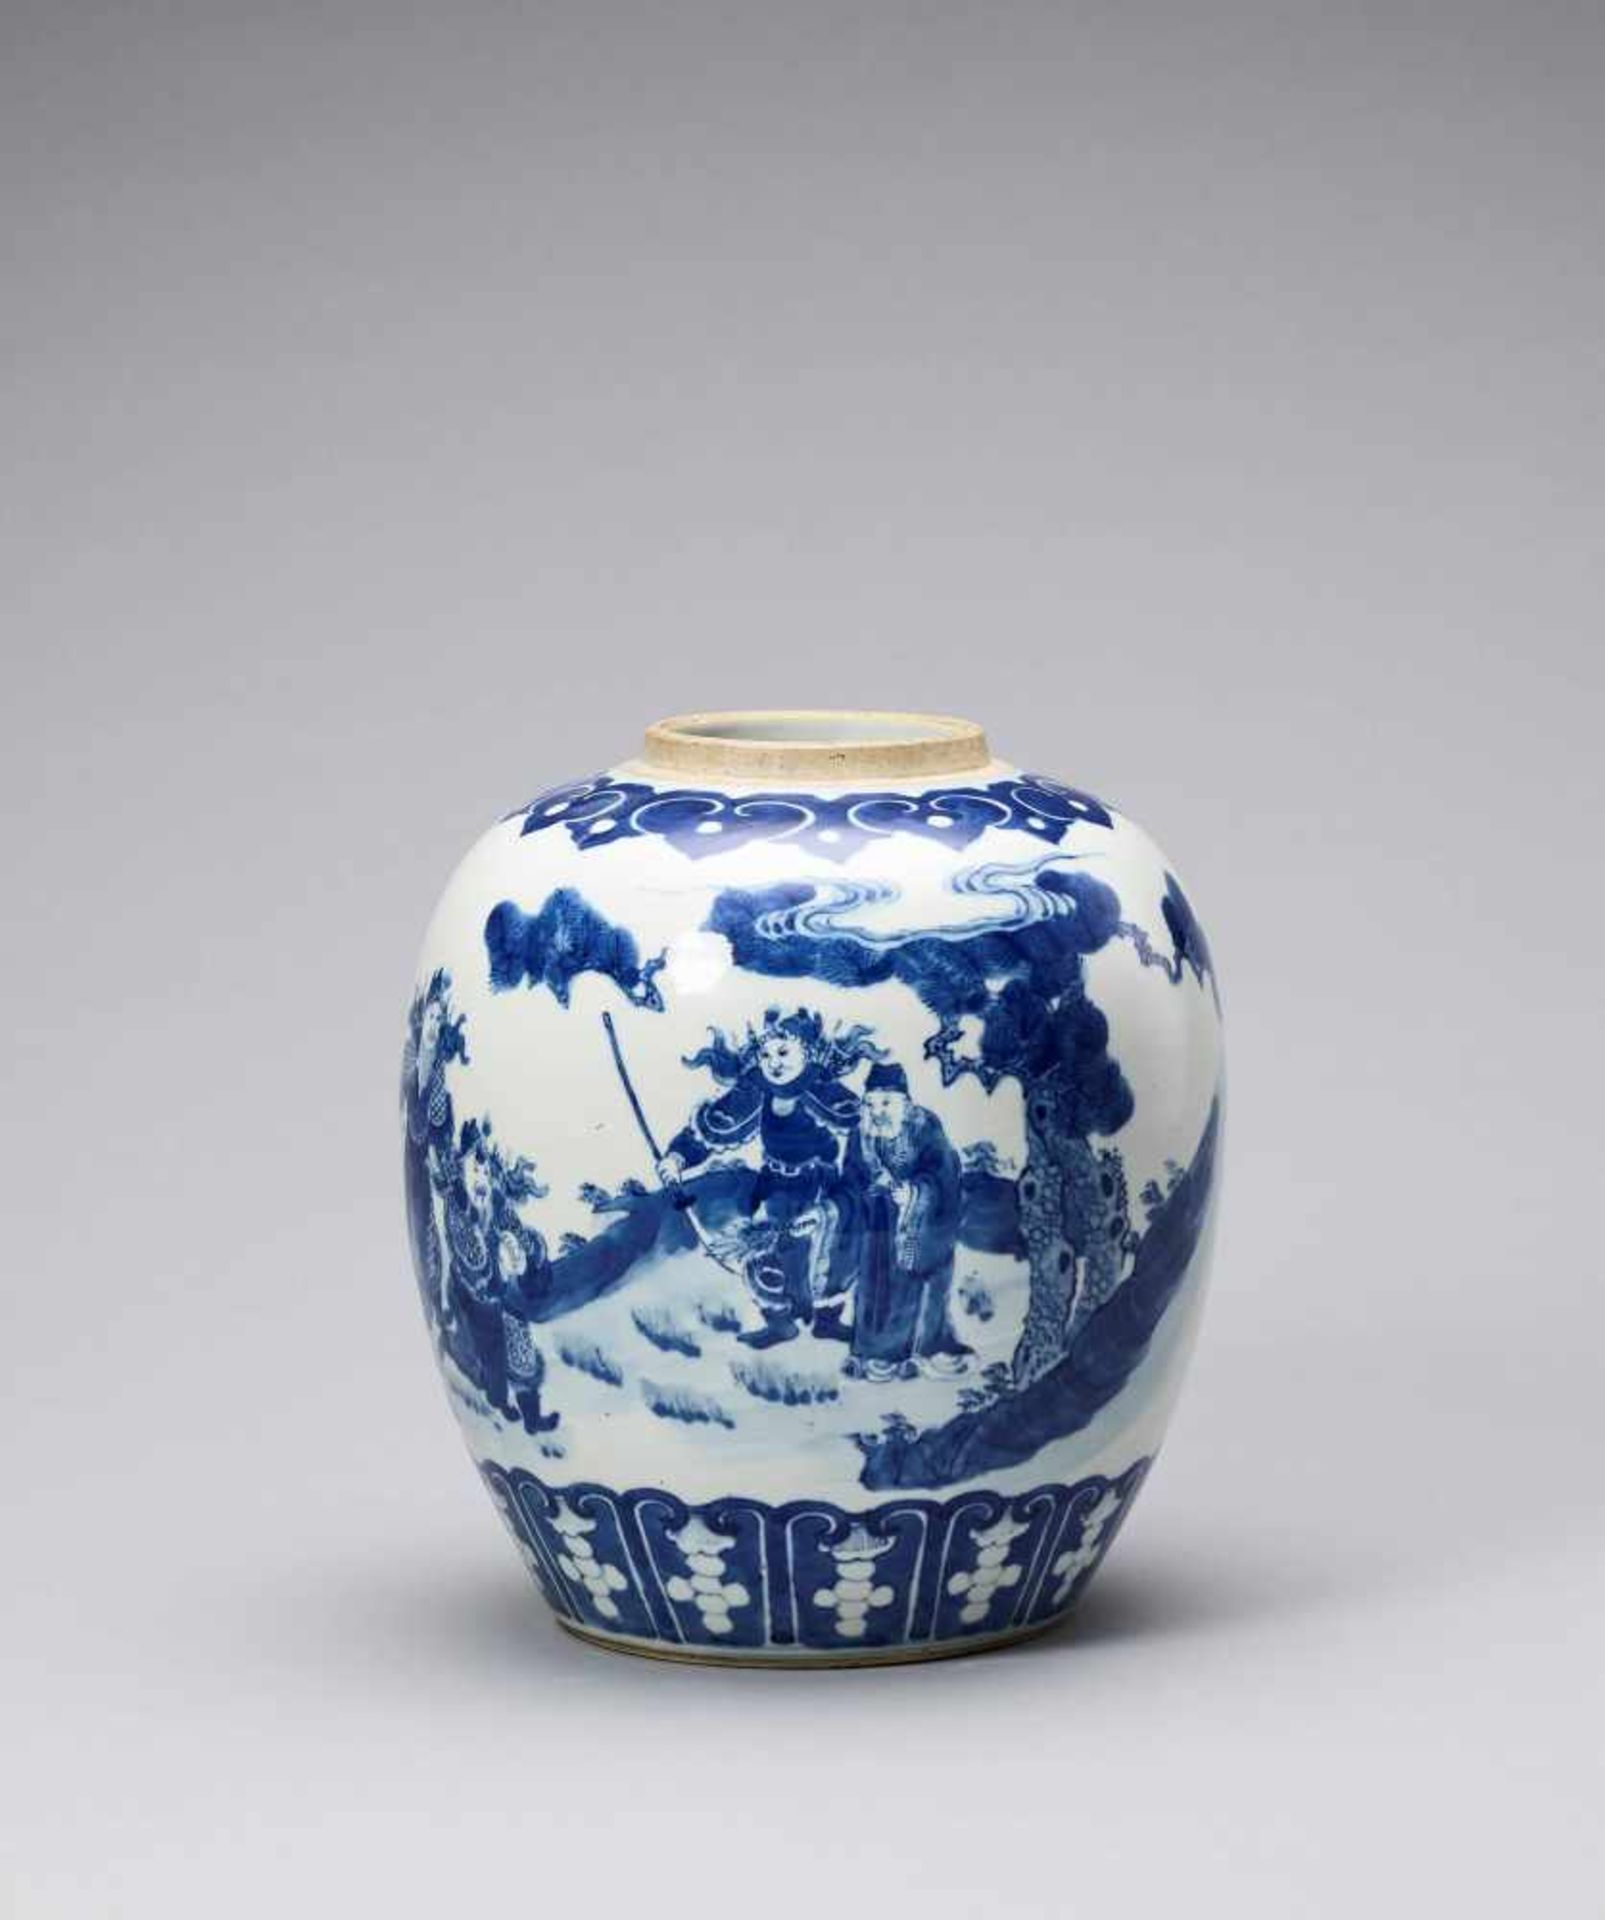 Los 439 - A BLUE AND WHITE GINGER JAR, QING